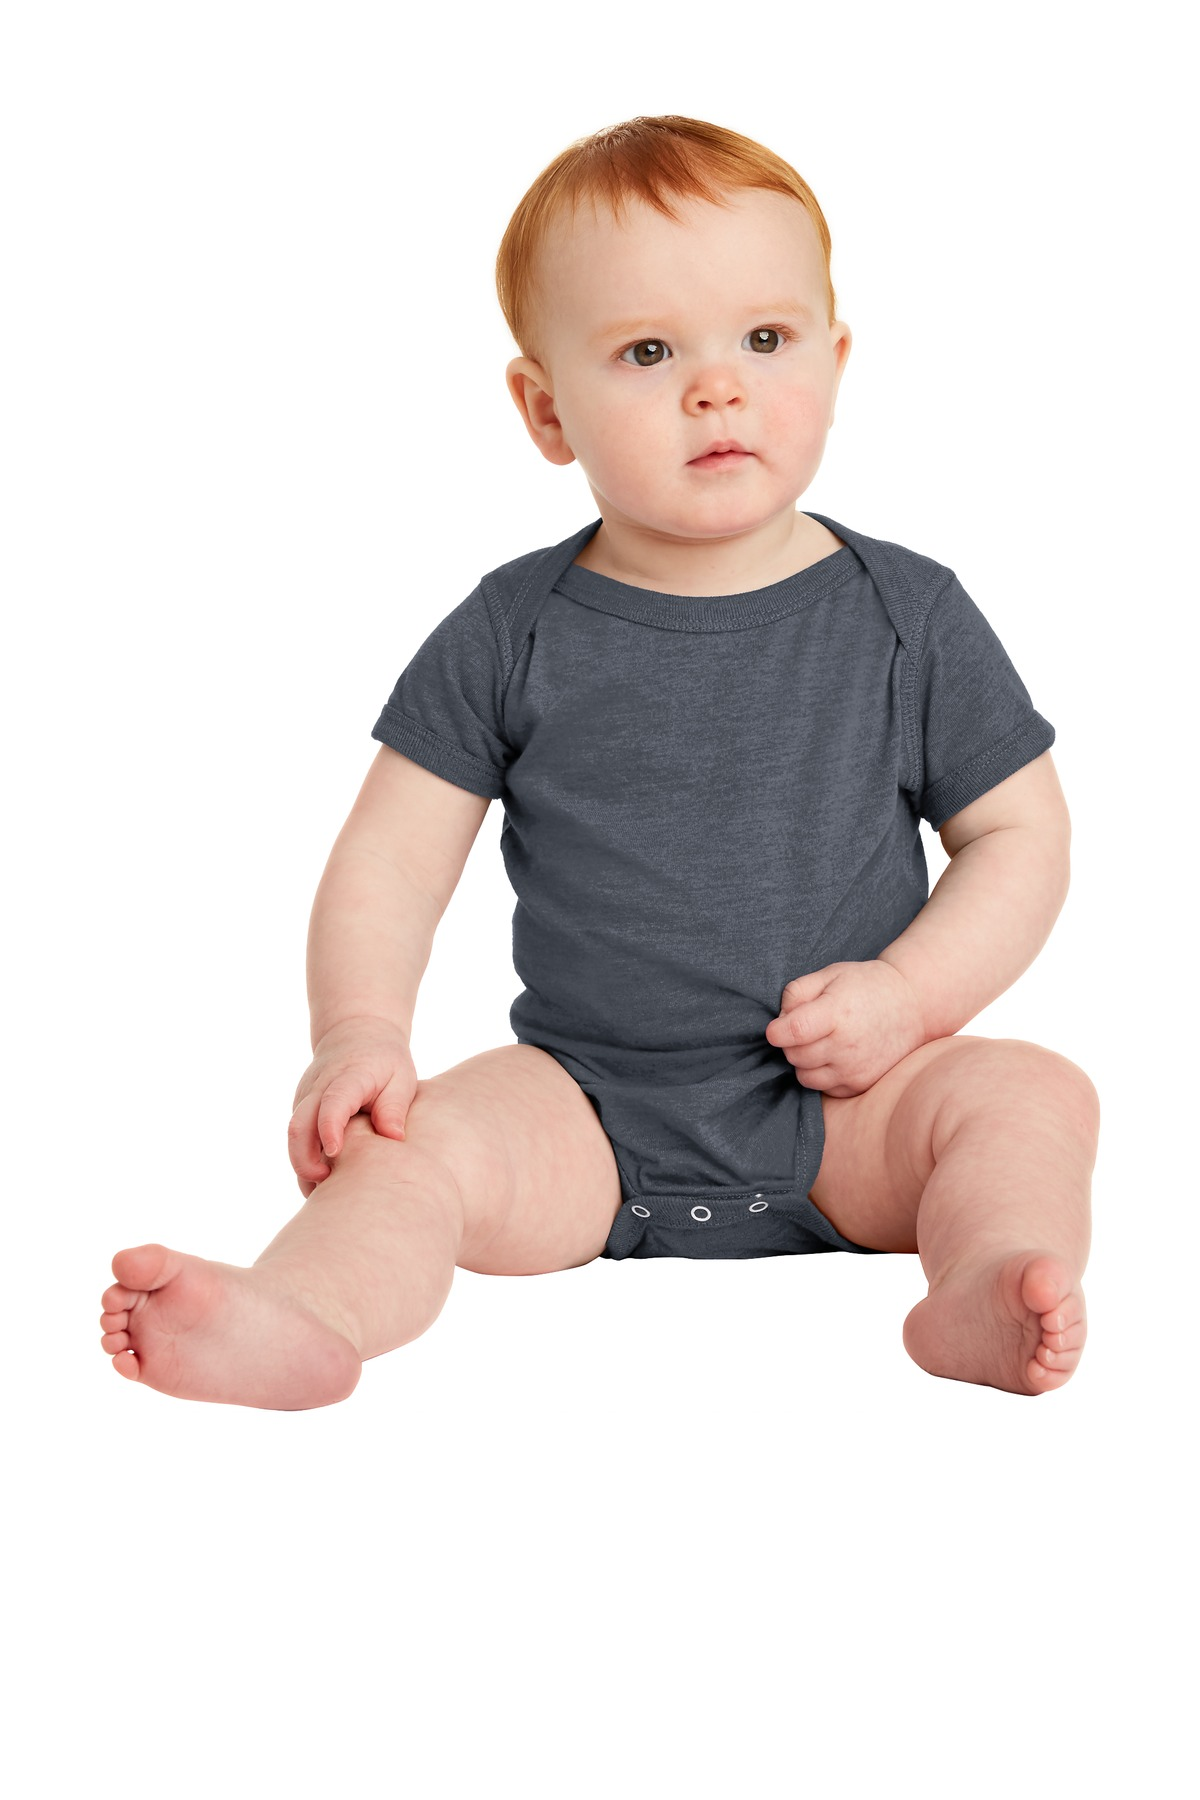 Rabbit Skins™ Infant Vintage Fine Jersey Bodysuit . RS4424 - Vintage Navy